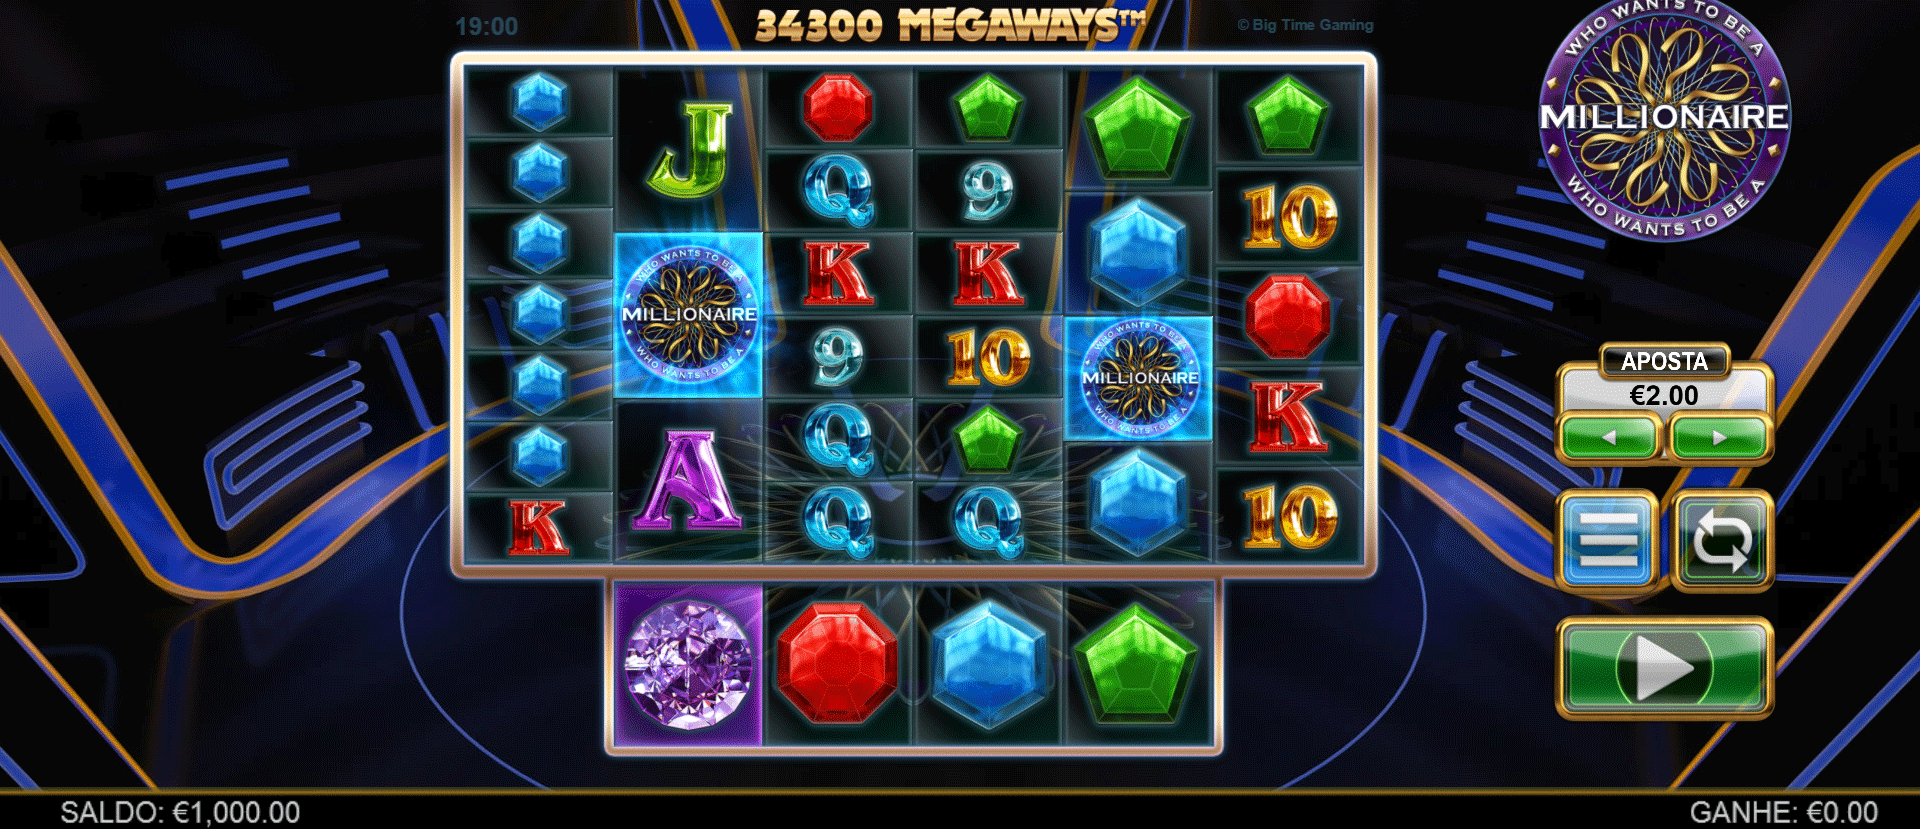 Slot Who Wants to Be a Millionaire Megaways